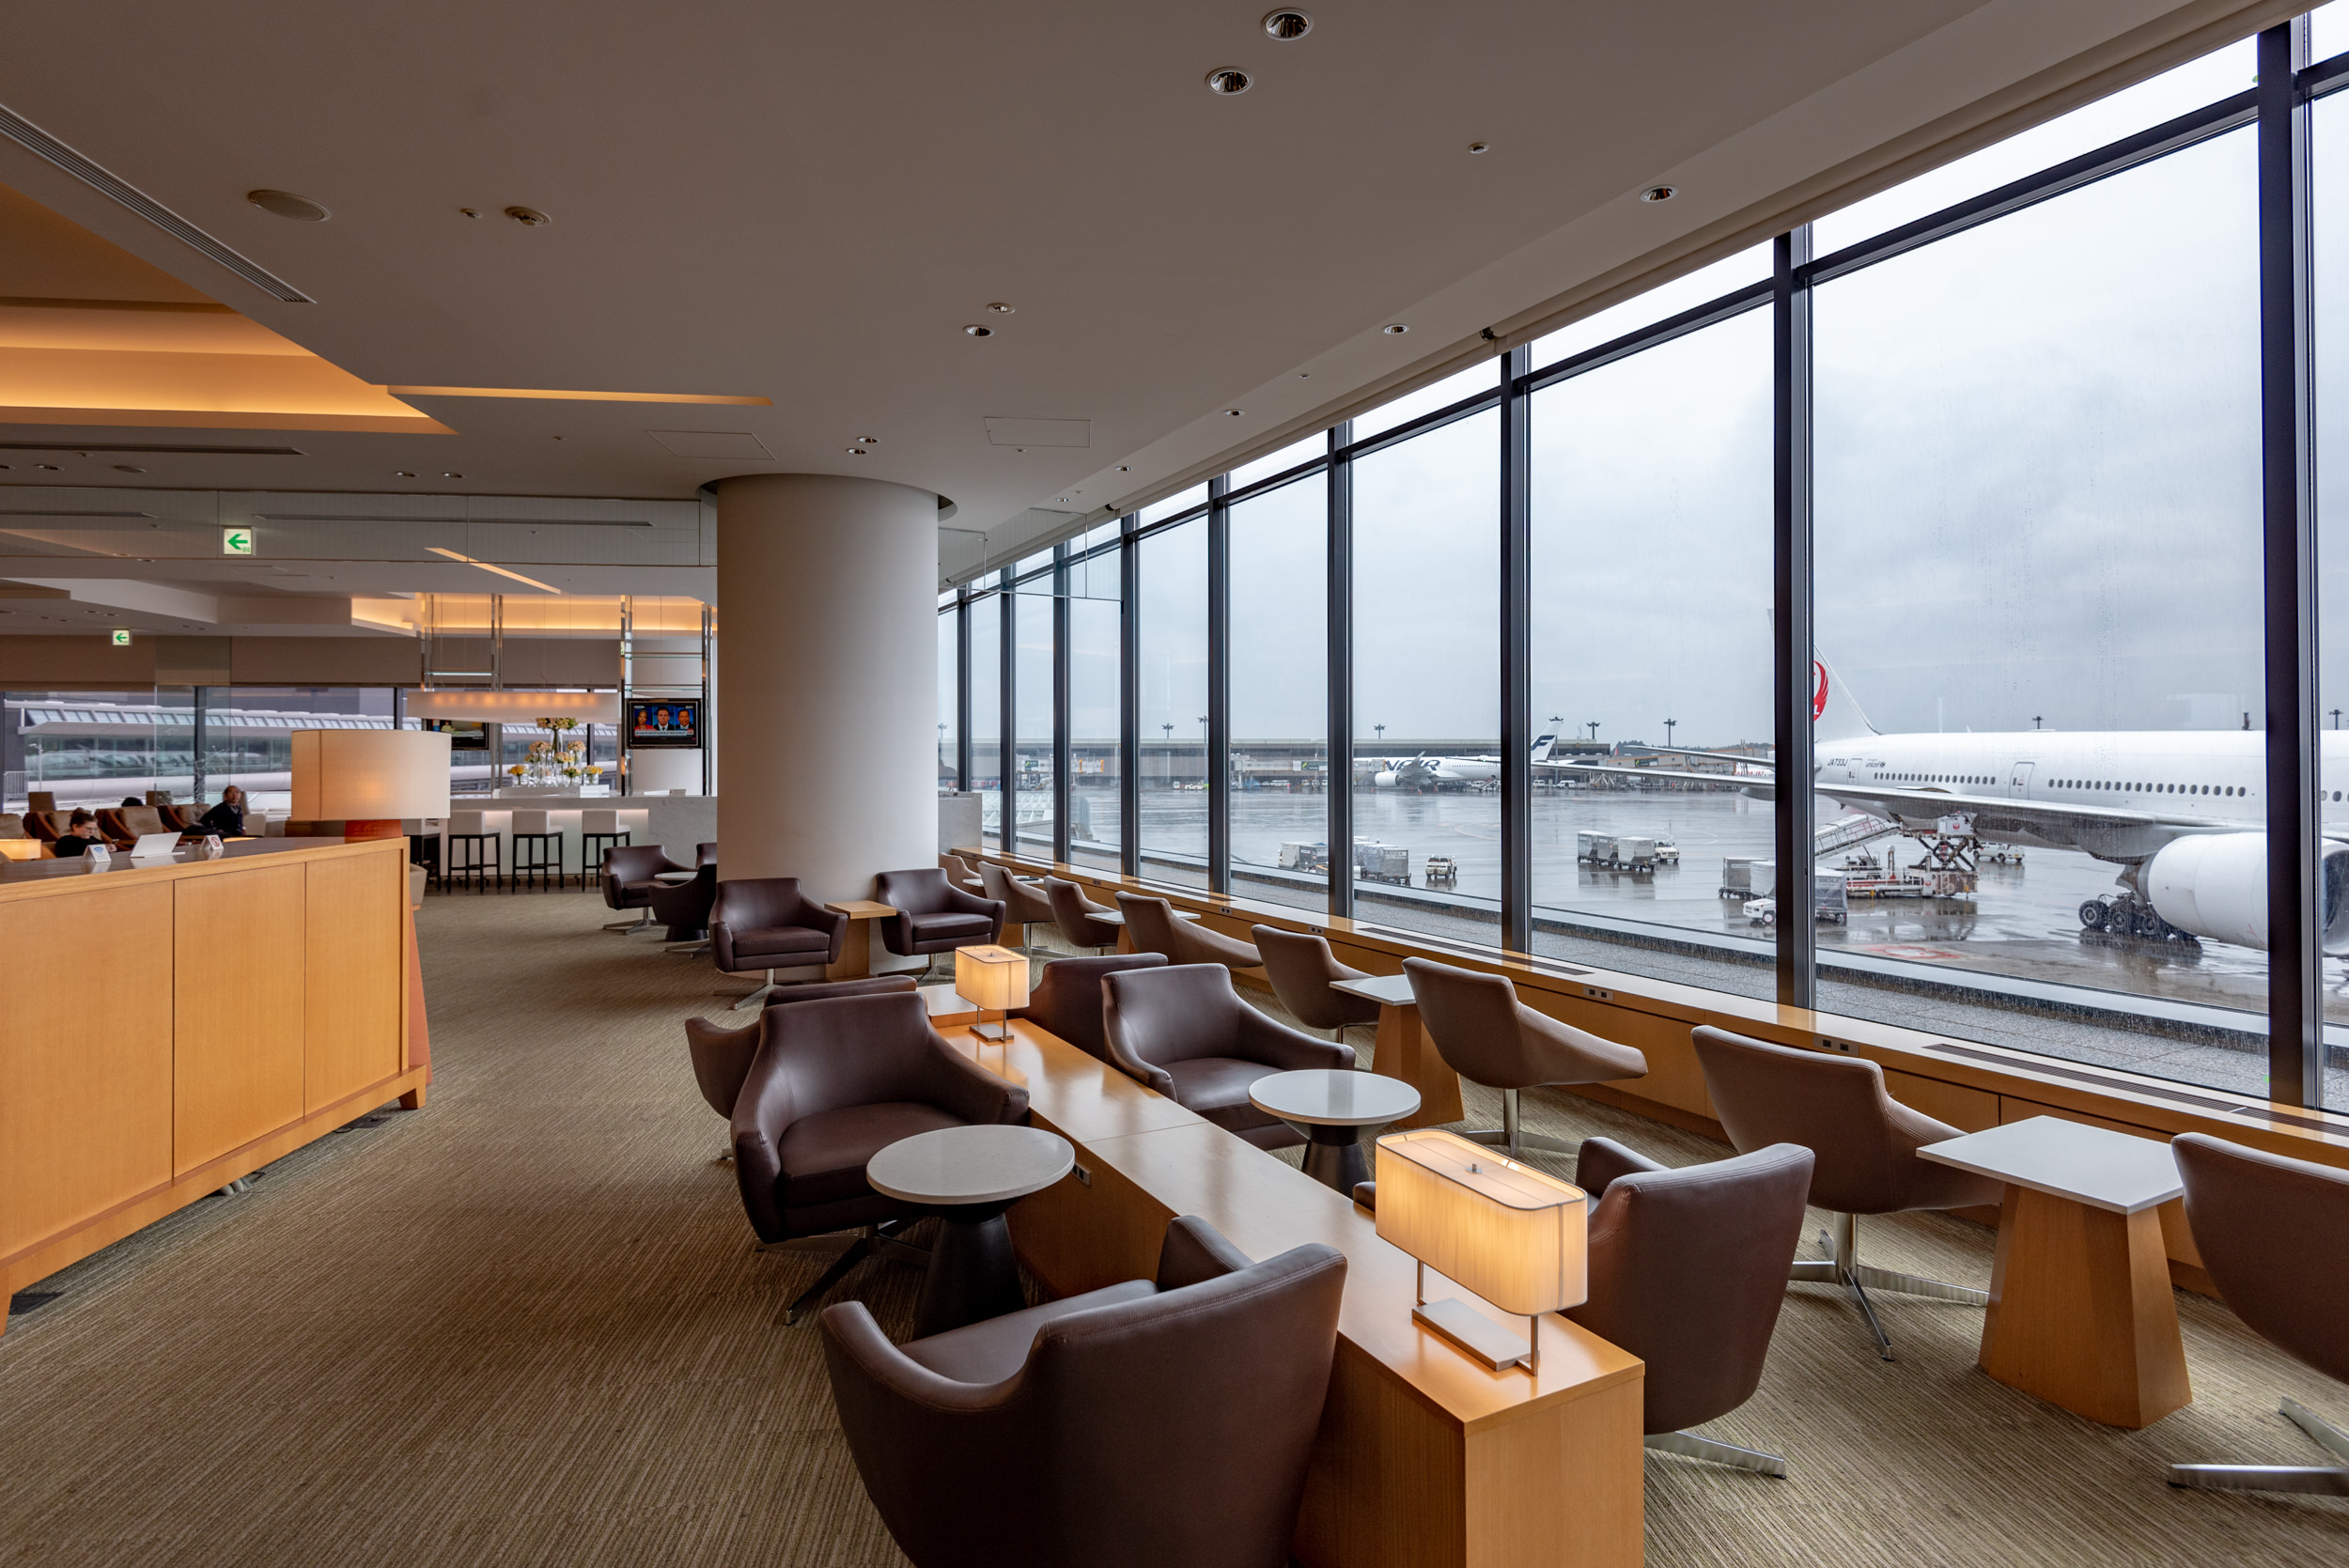 Japan Airlines Sakura Lounge - Narita International Airport (NRT)